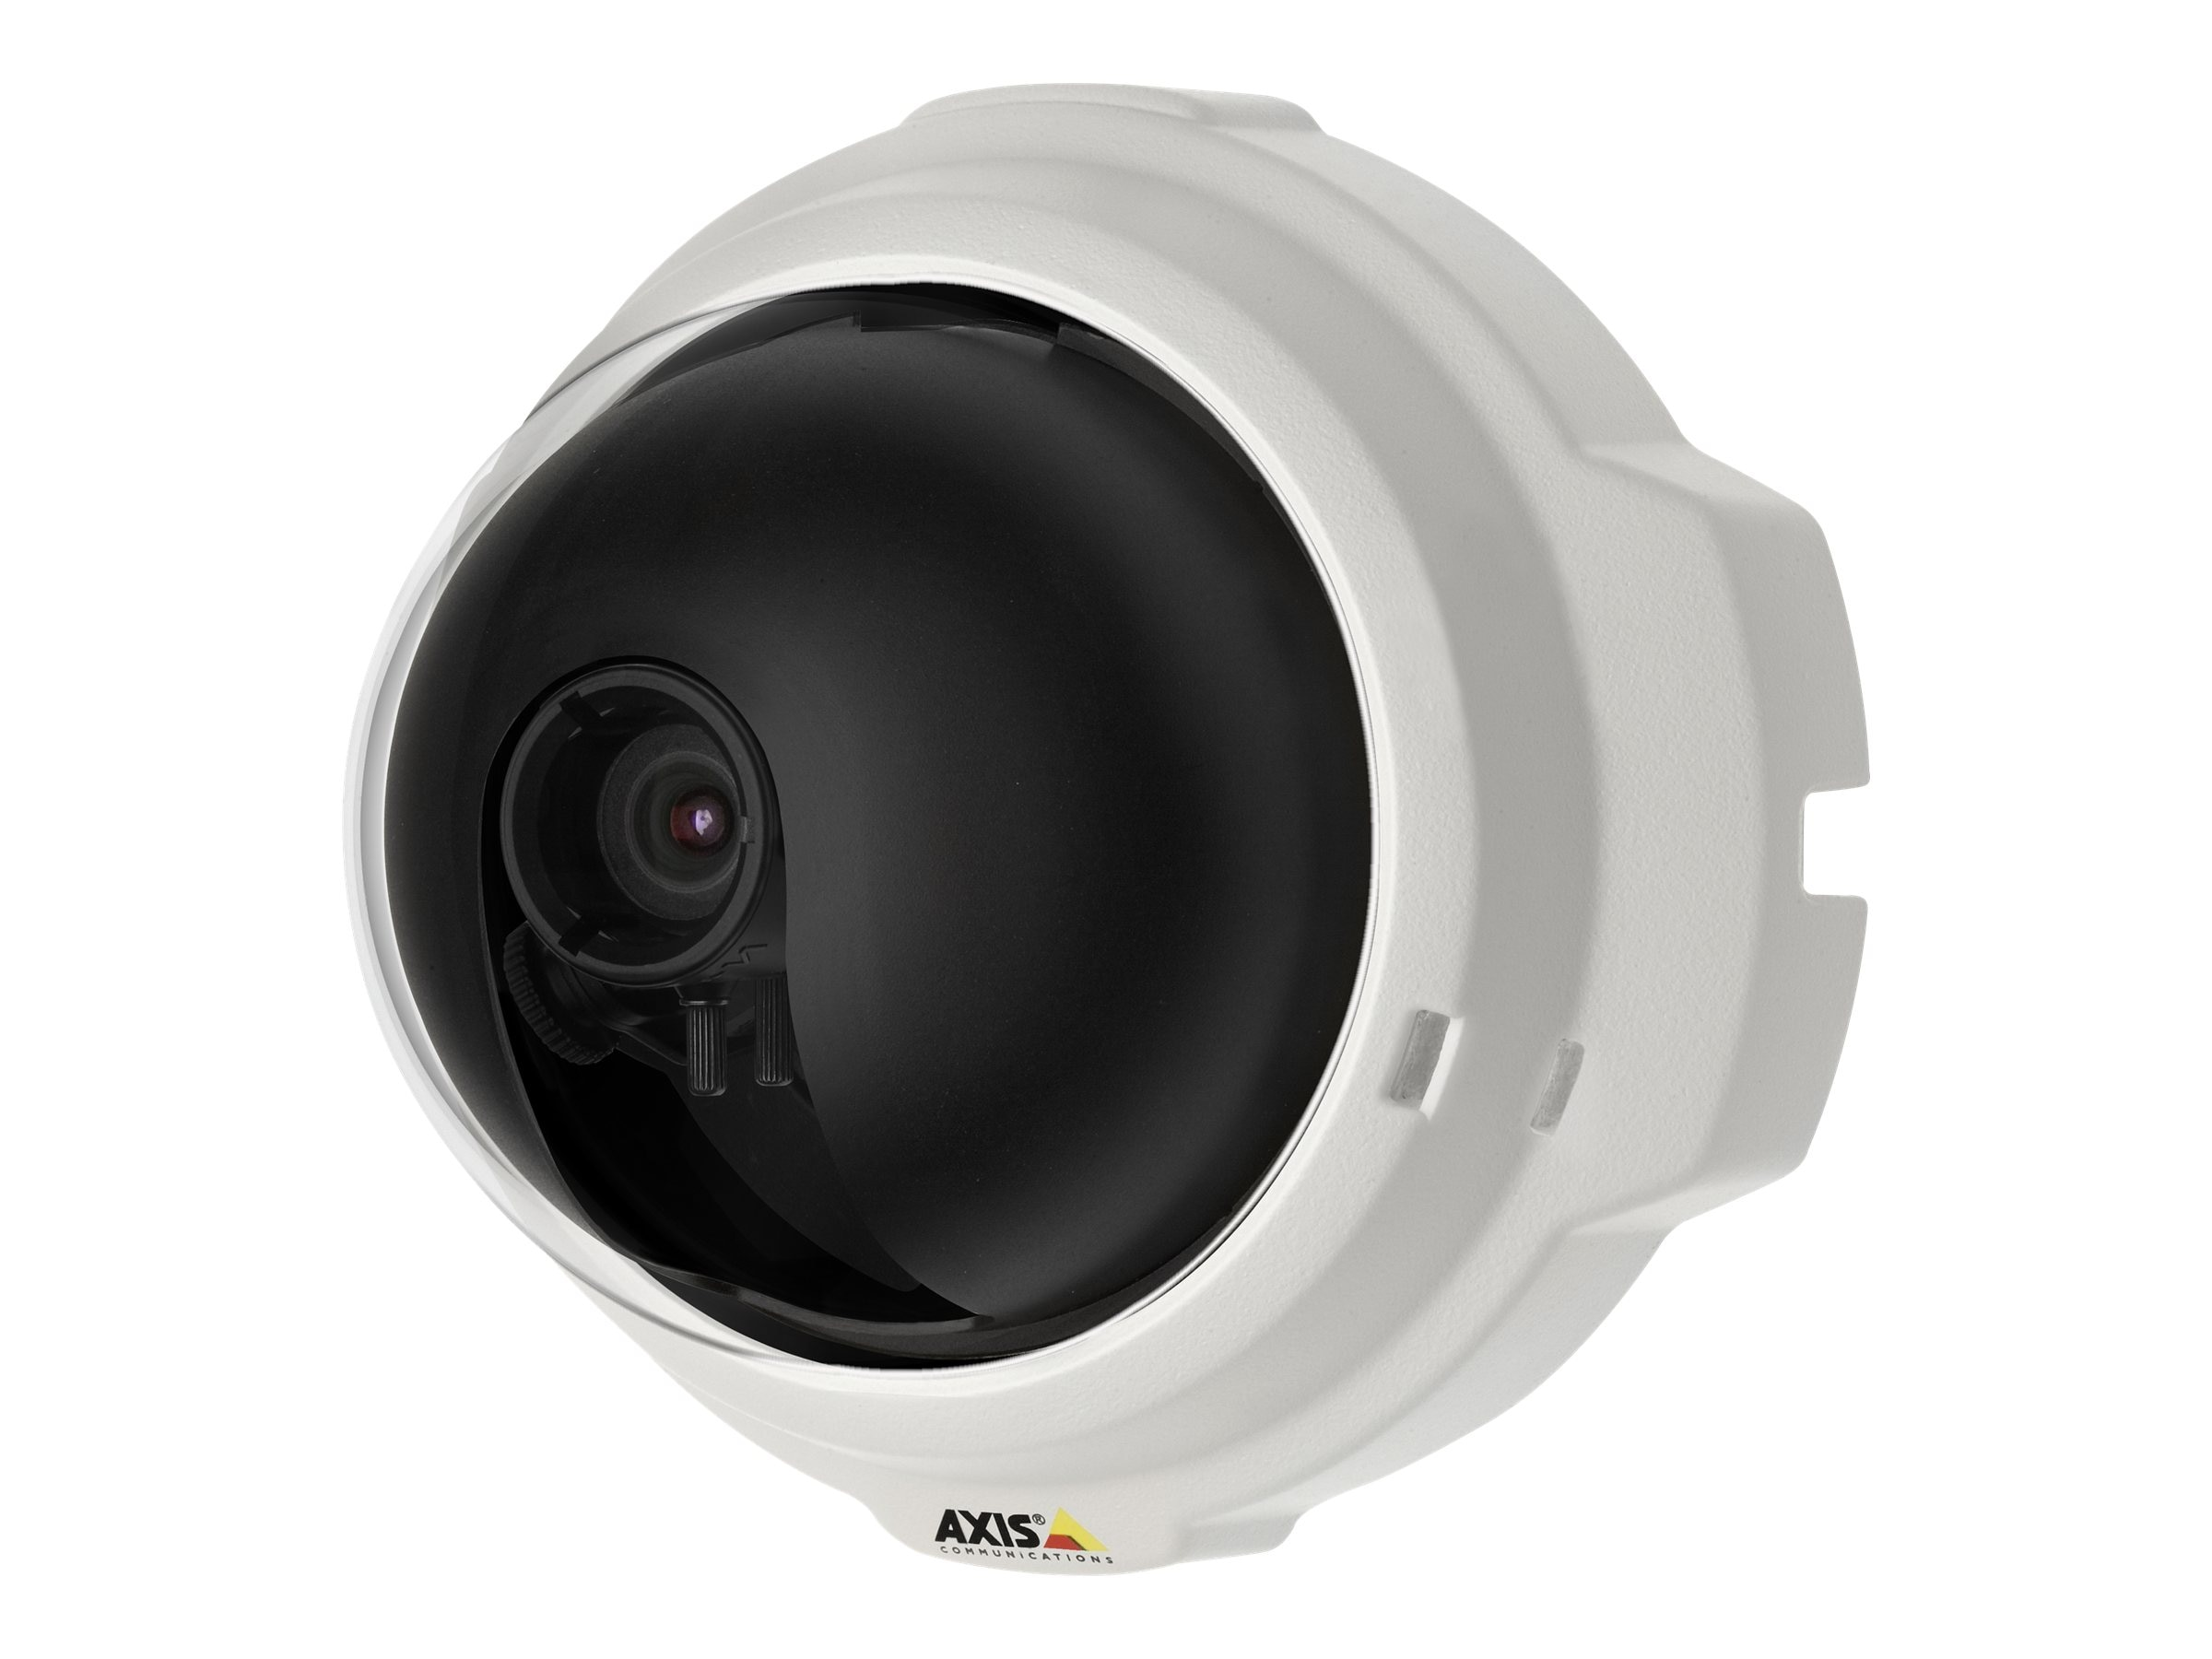 Axis M3203-V Fixed Vandal Resistant Dome, PoE, 0345-001, 11238461, Cameras - Security